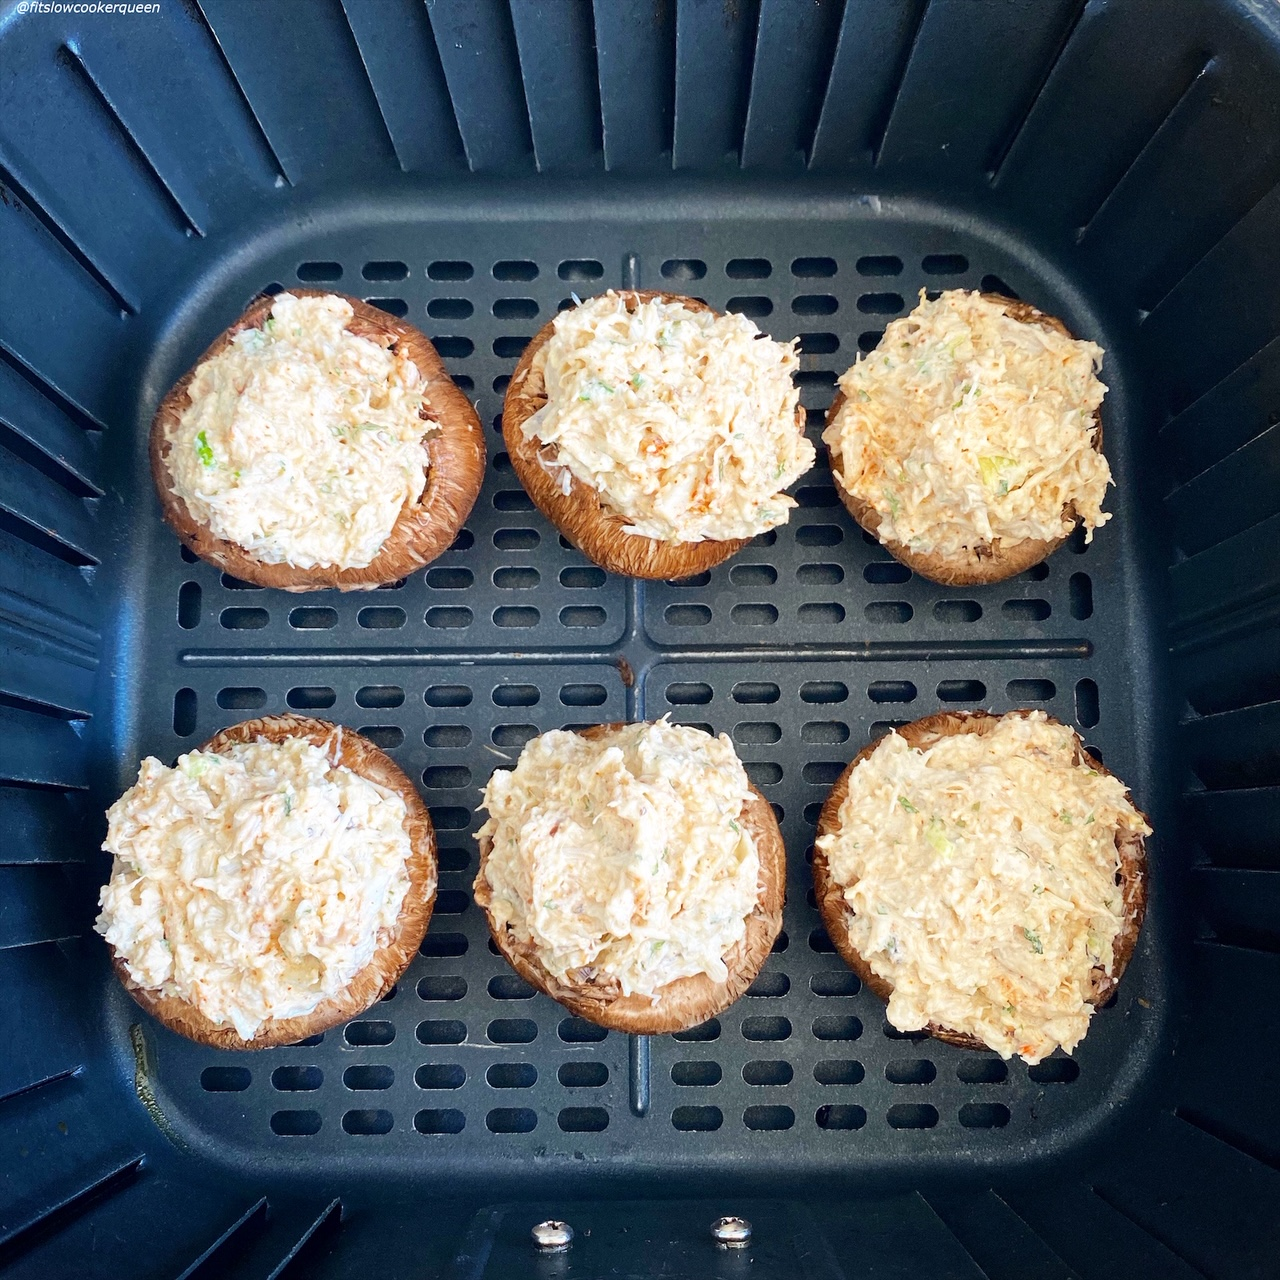 6 uncooked baby portobello crab stuffed mushrooms in the air fryer